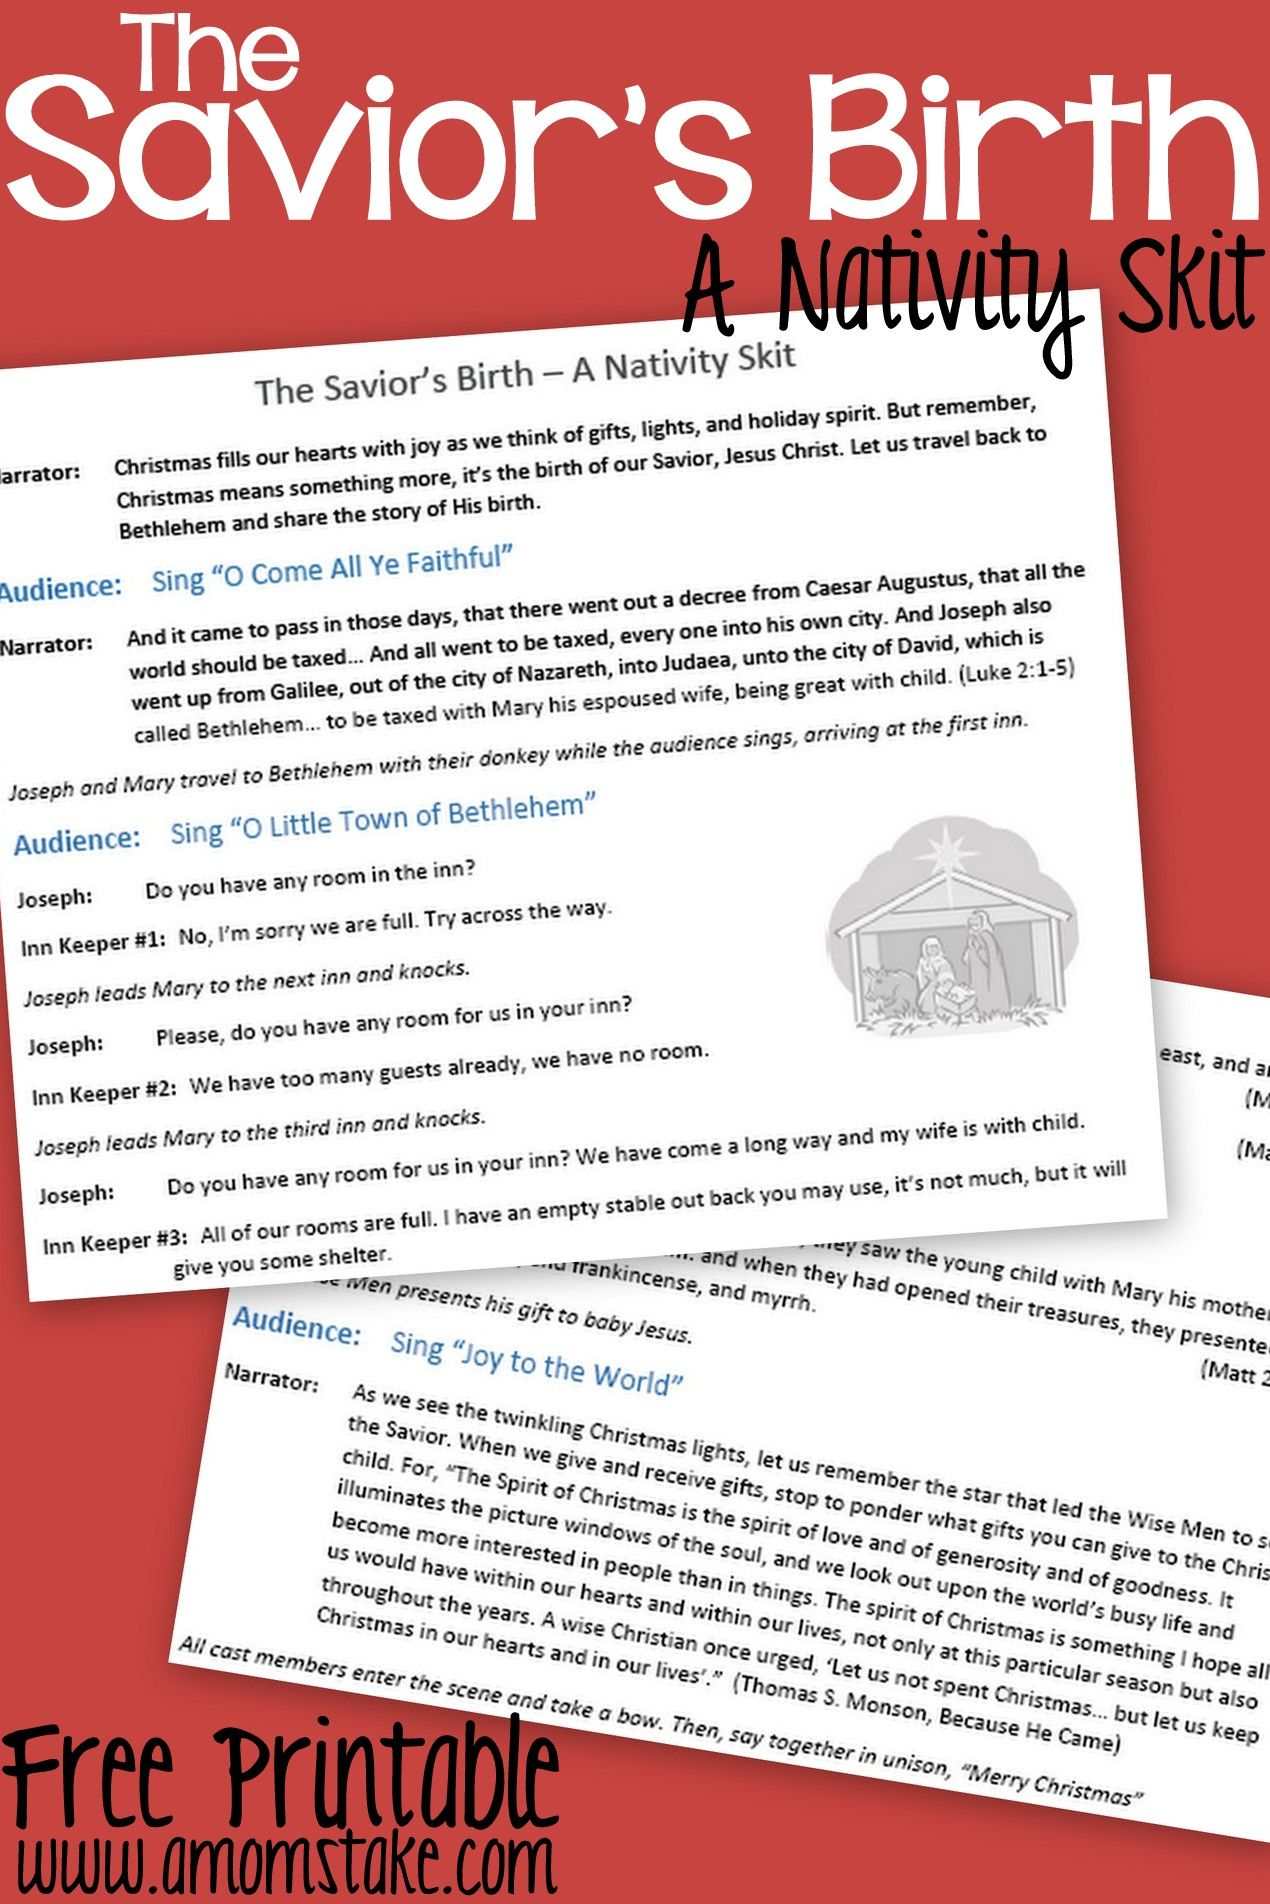 Funny Skits For Welcome Party : funny, skits, welcome, party, Printable, Nativity, Birth, Savior, Jesus, Christ, Activity, Christ…, Skit,, Christmas, Skits,, Plays